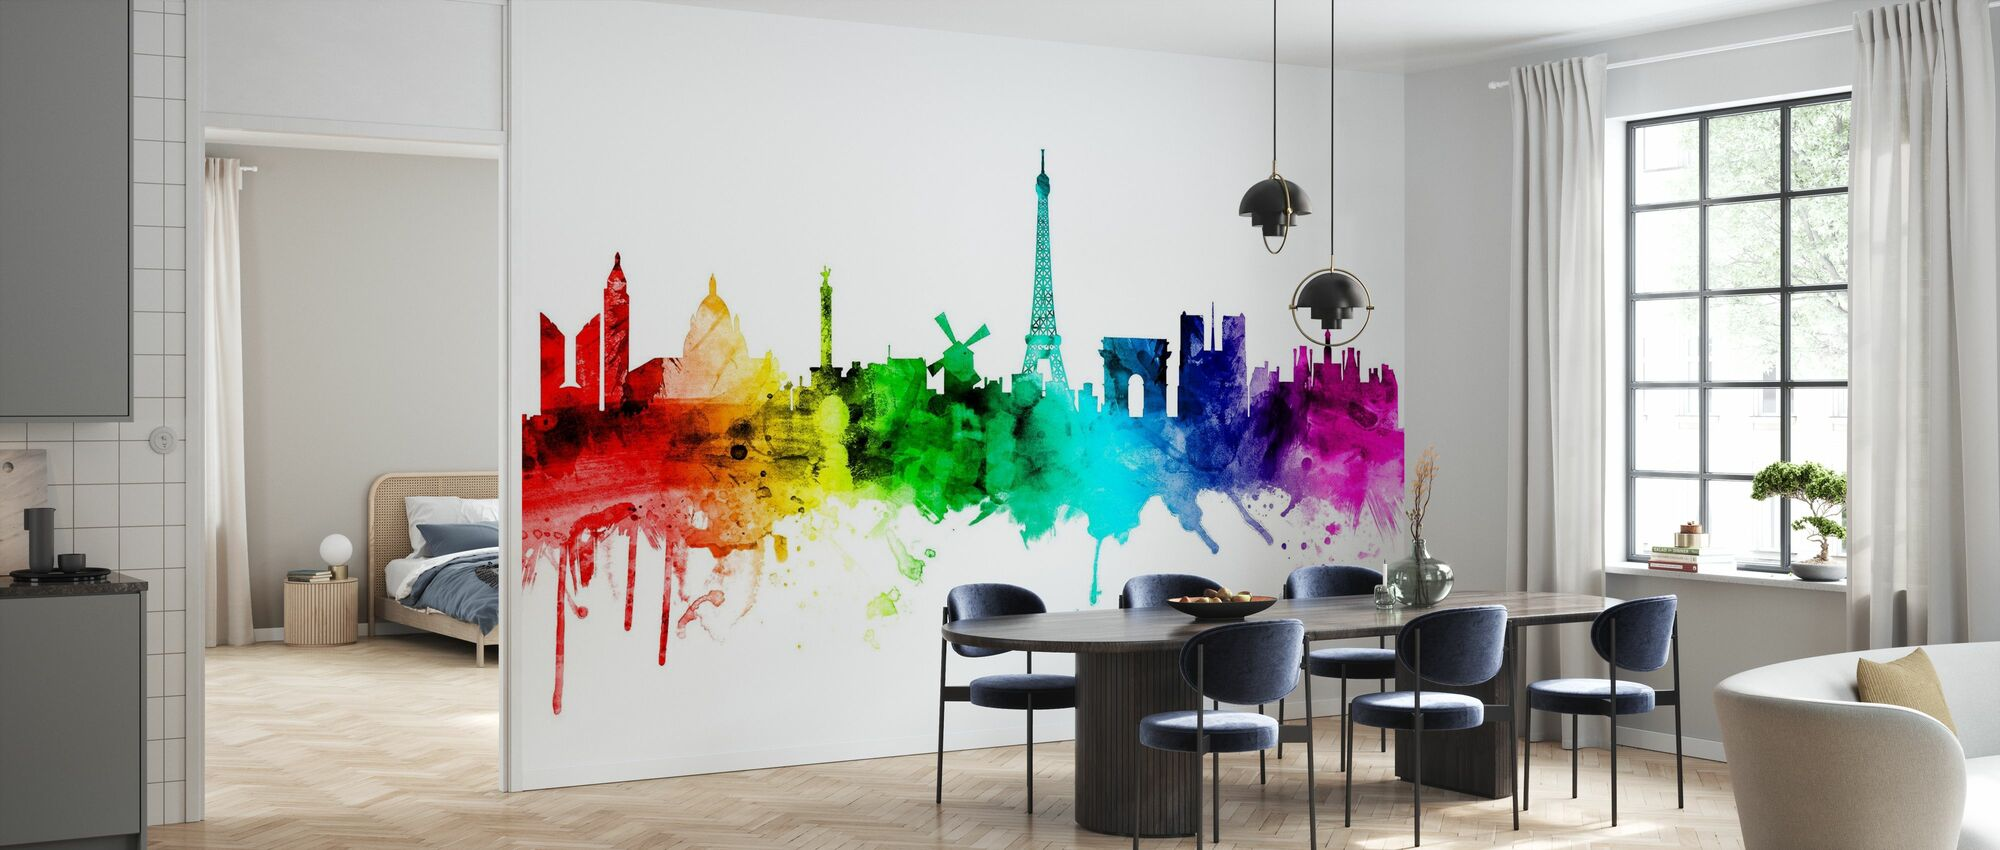 Paris Skyline Rainbow - Wallpaper - Kitchen